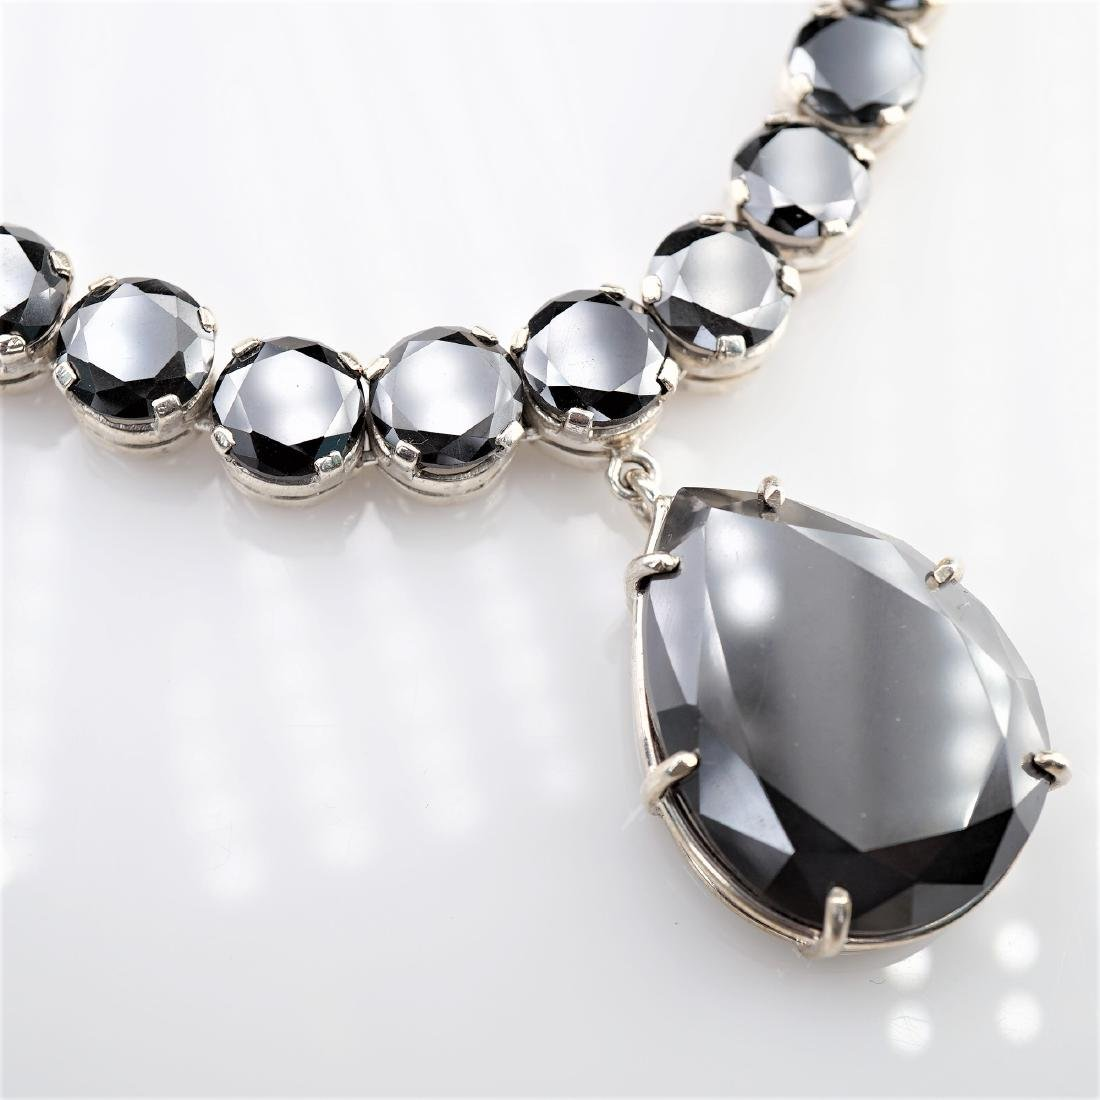 140 CTTW Black Diamond Necklace